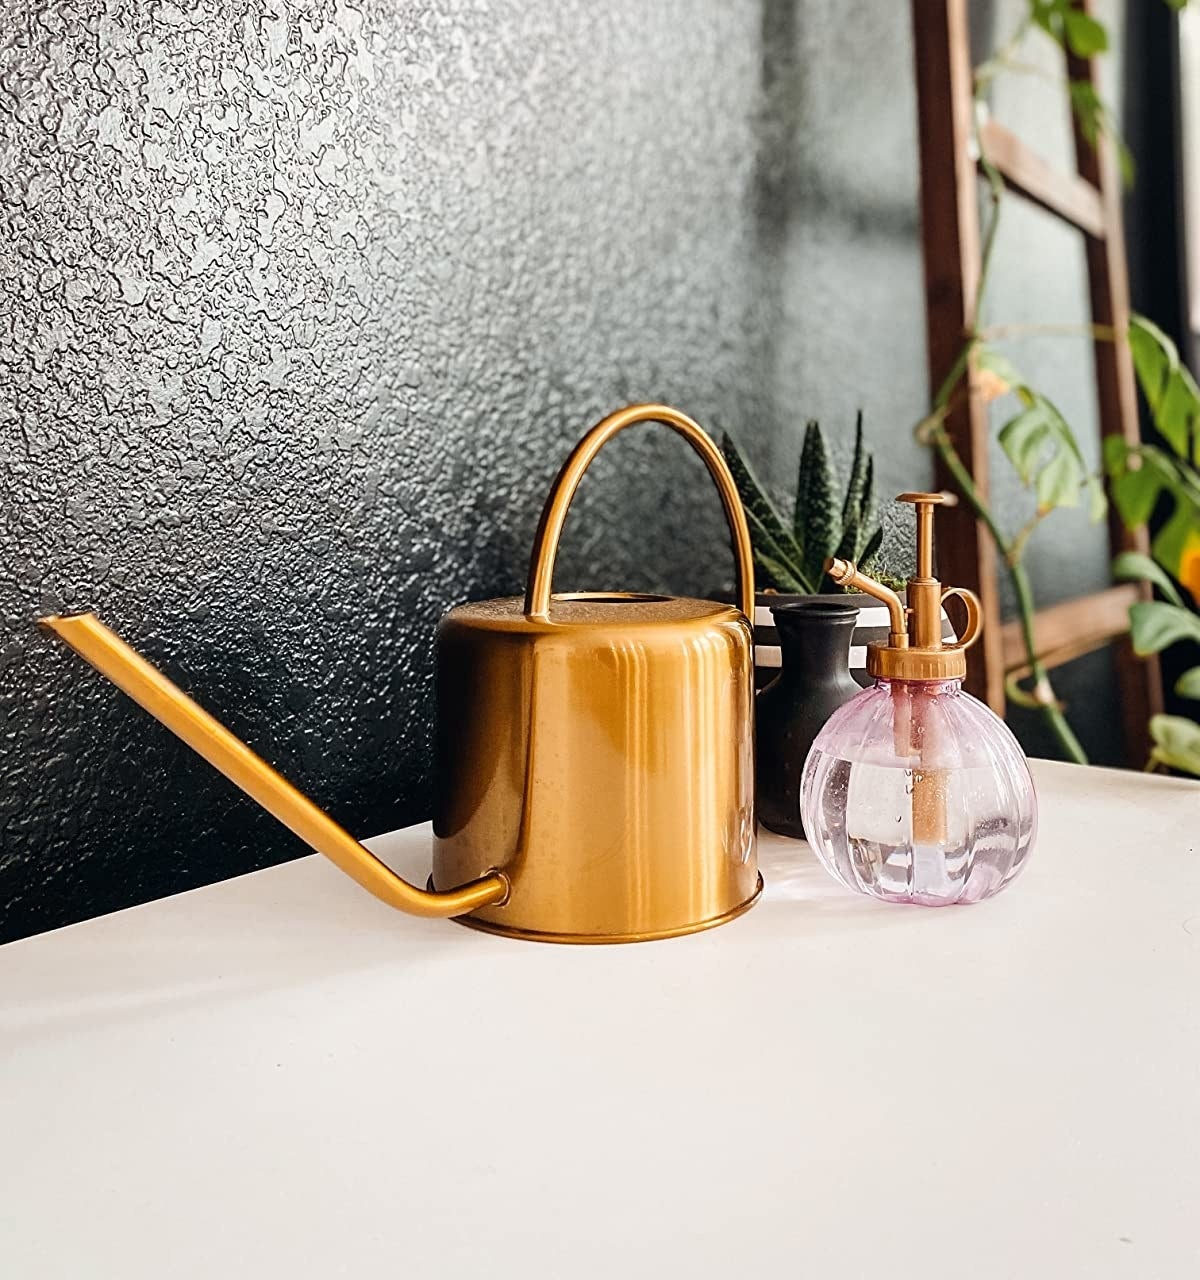 reviewer showing the gold watering can next to the matching mister